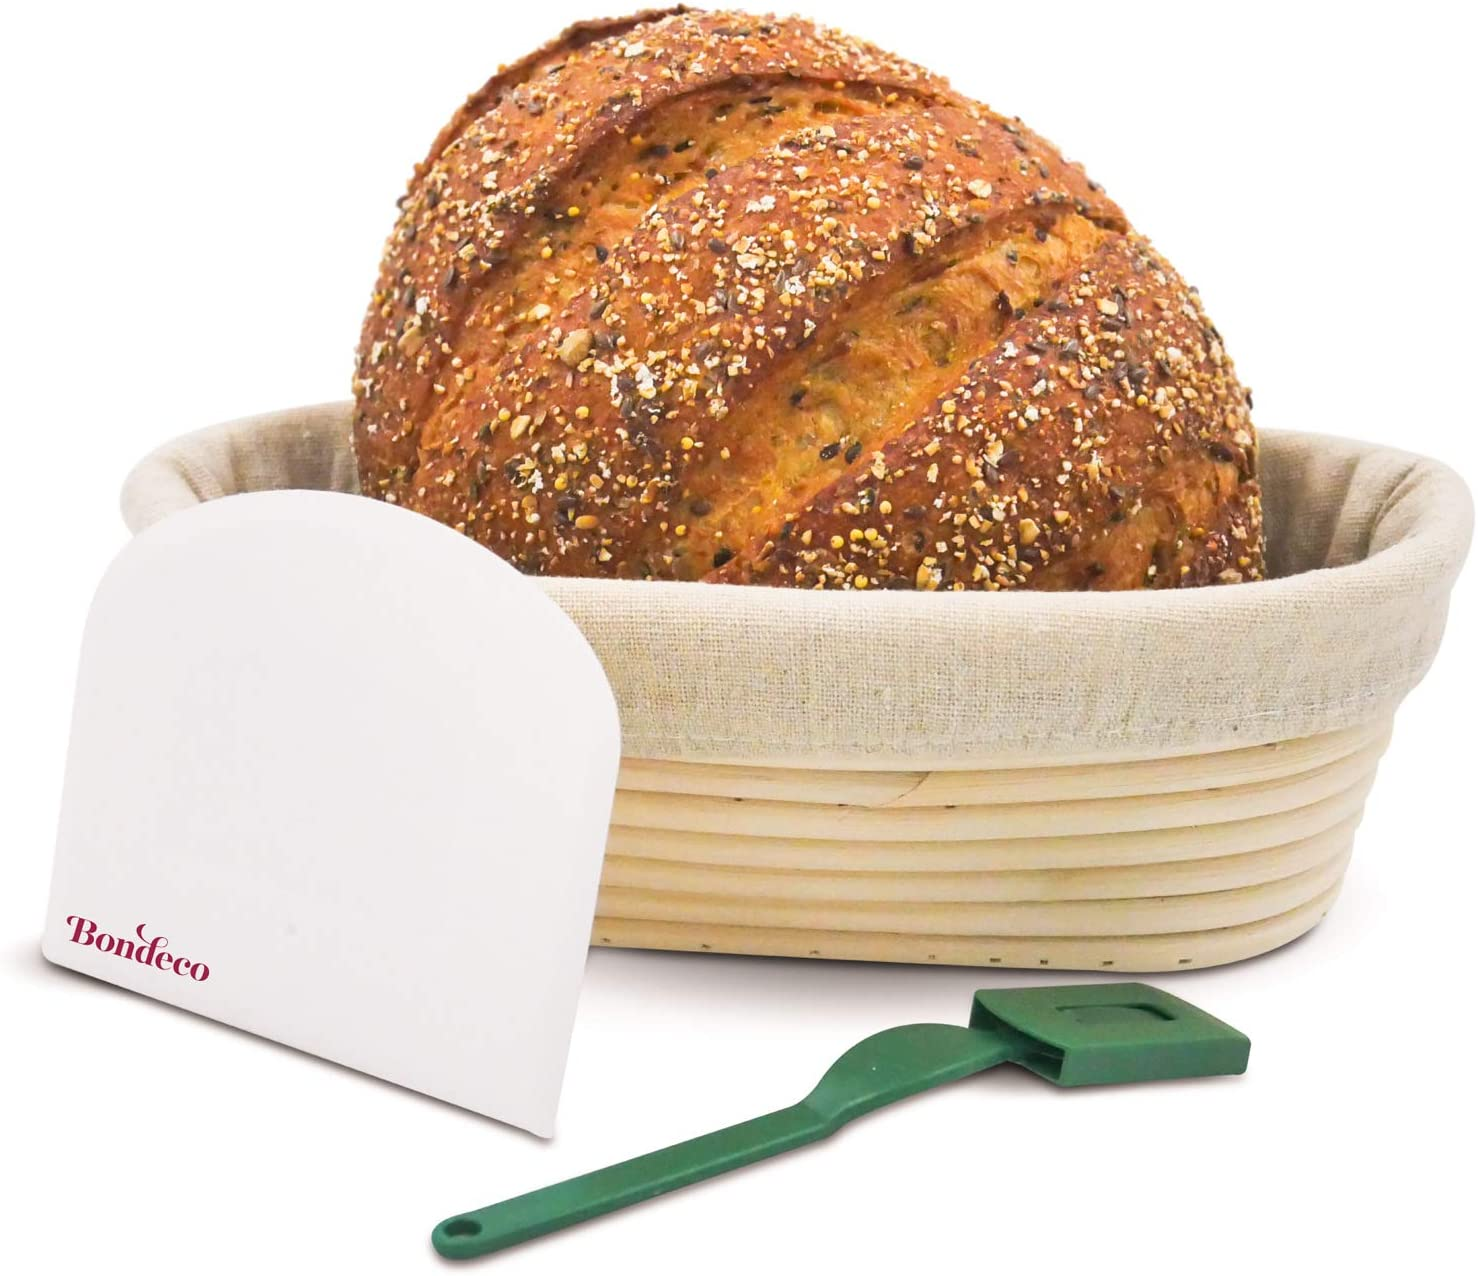 BONDECO Banneton Bread Proofing Basket with Cloth Liner -Oval 10 Inch - Dough Scraper + Bread Lame   Professional and Home Bakers   Artisan Bread Making